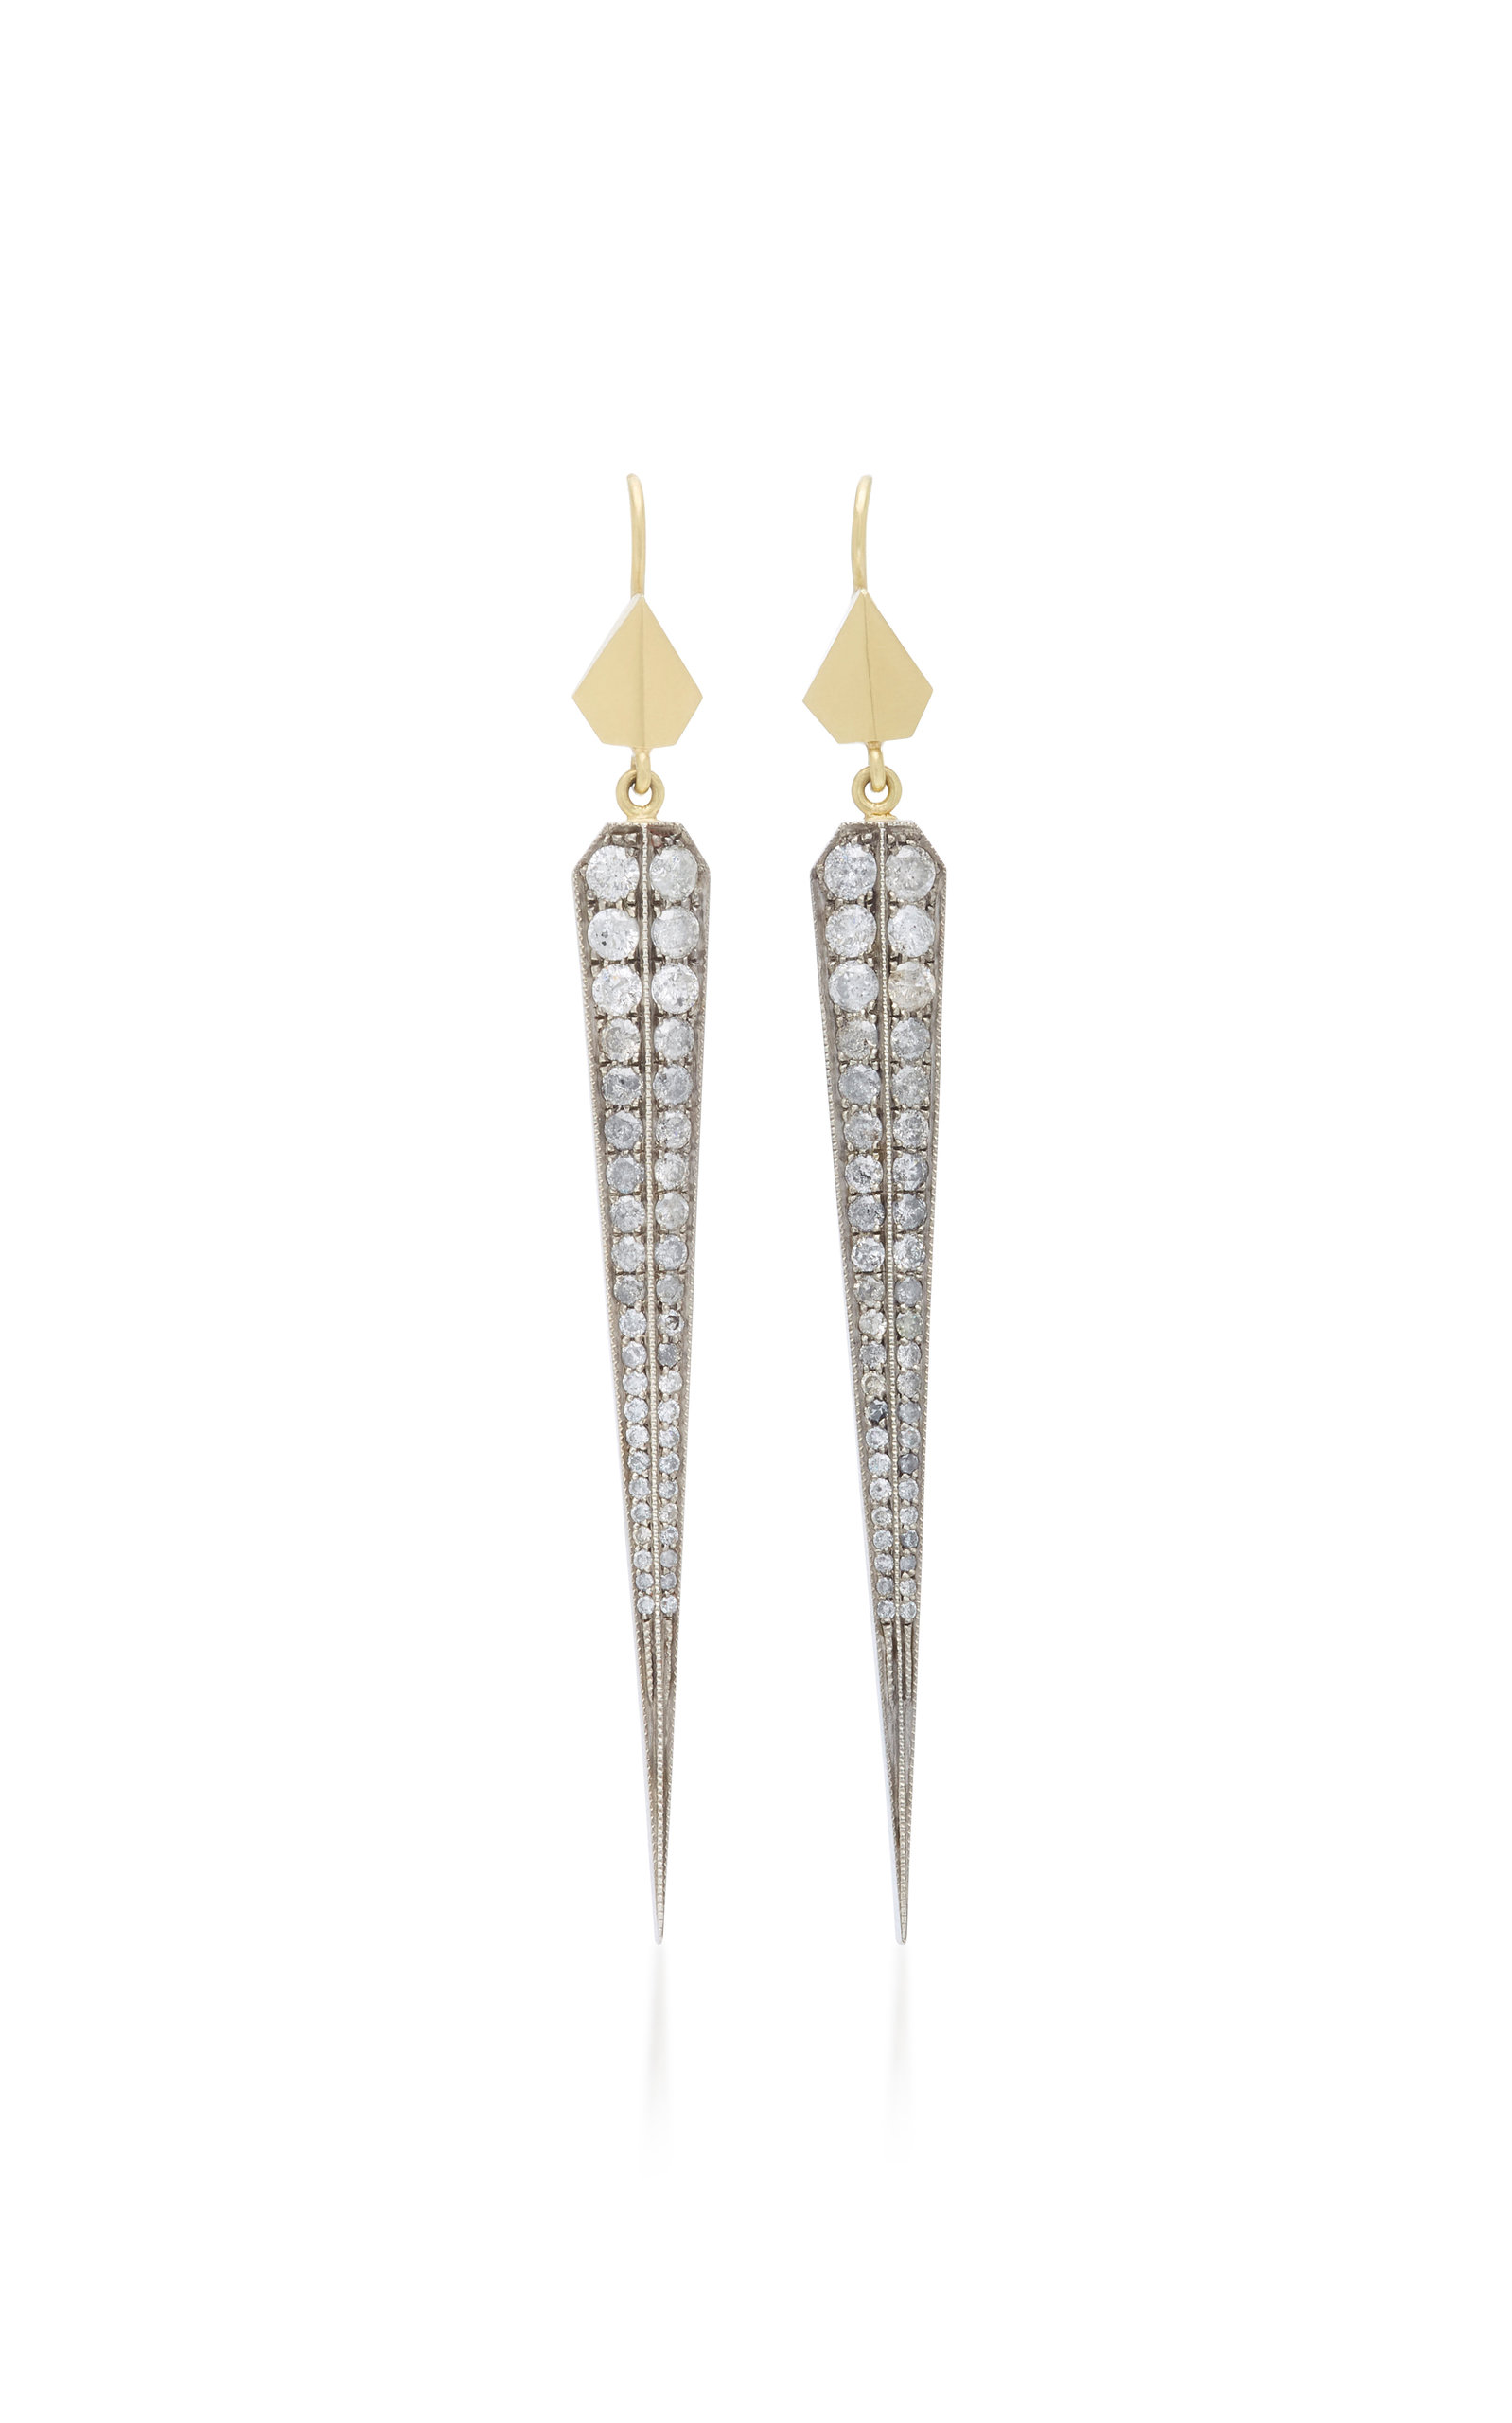 18K Gold Sterling Silver and Diamond Earrings Sylva & Cie. Classic Outlet With Paypal Outlet Cheapest fkNOo0